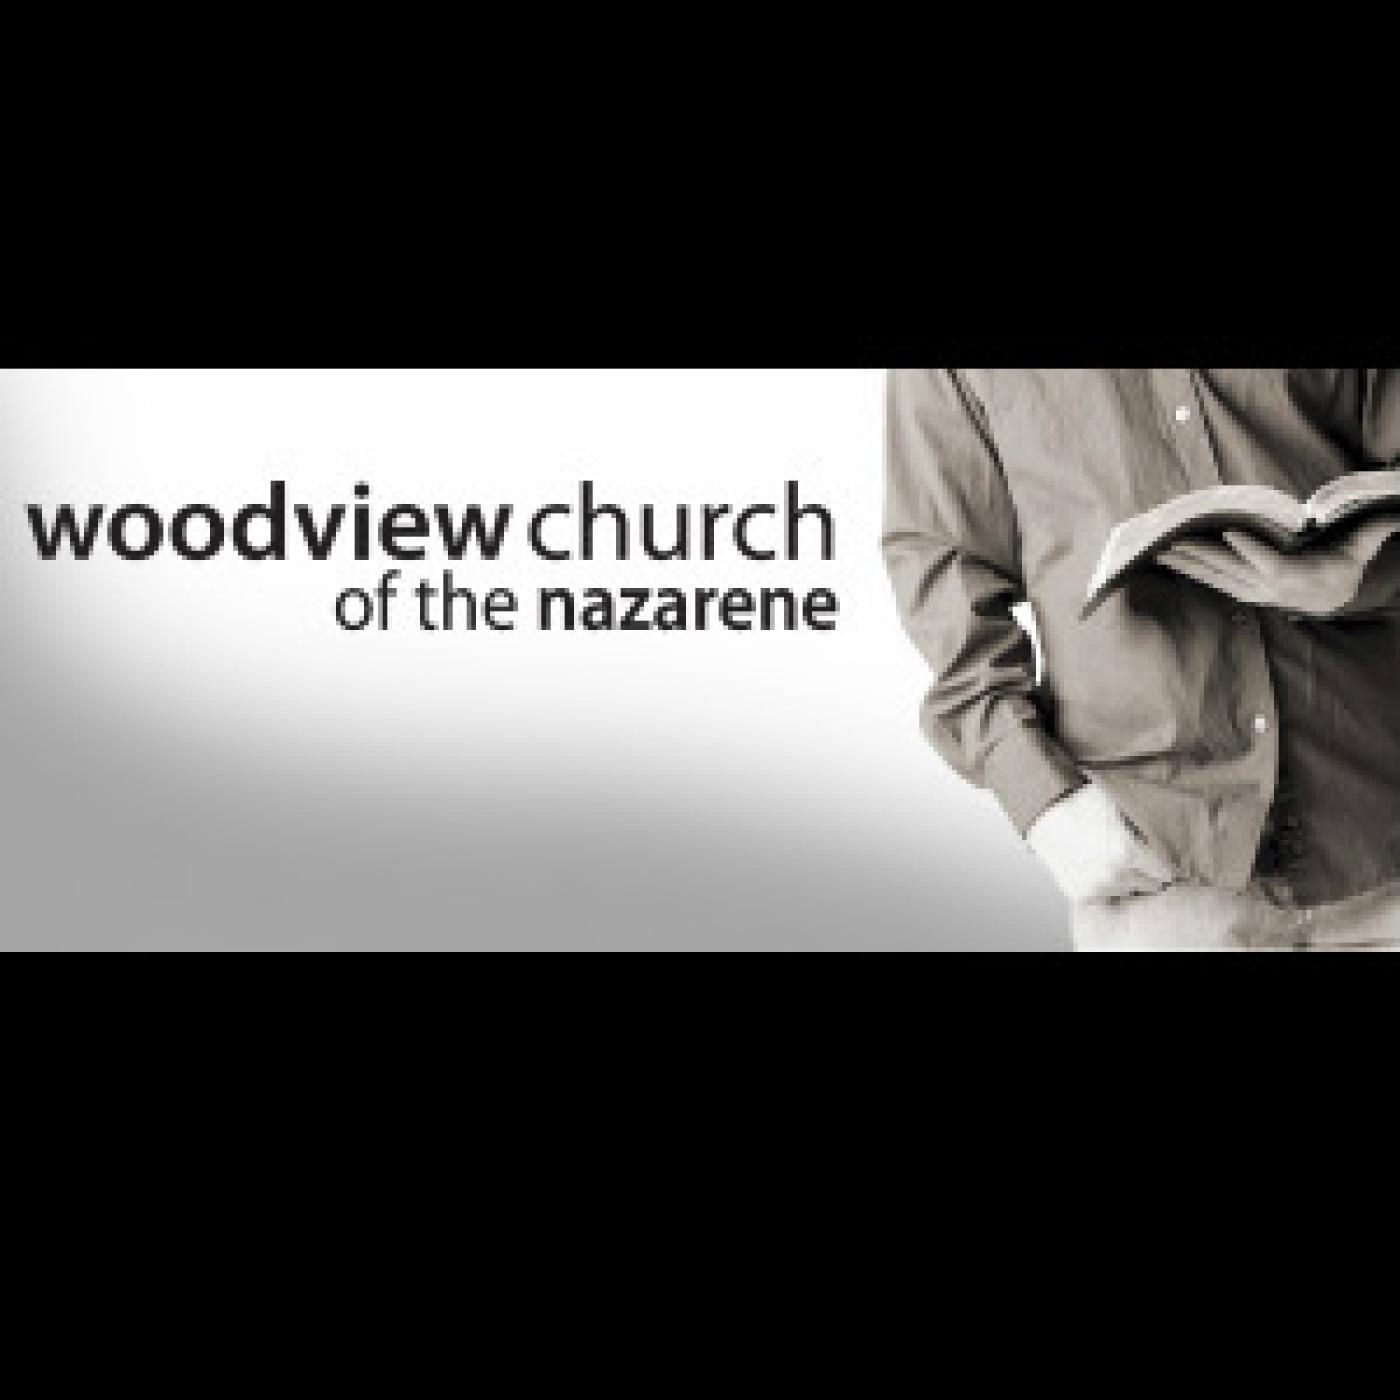 Woodview Church of the Nazarene